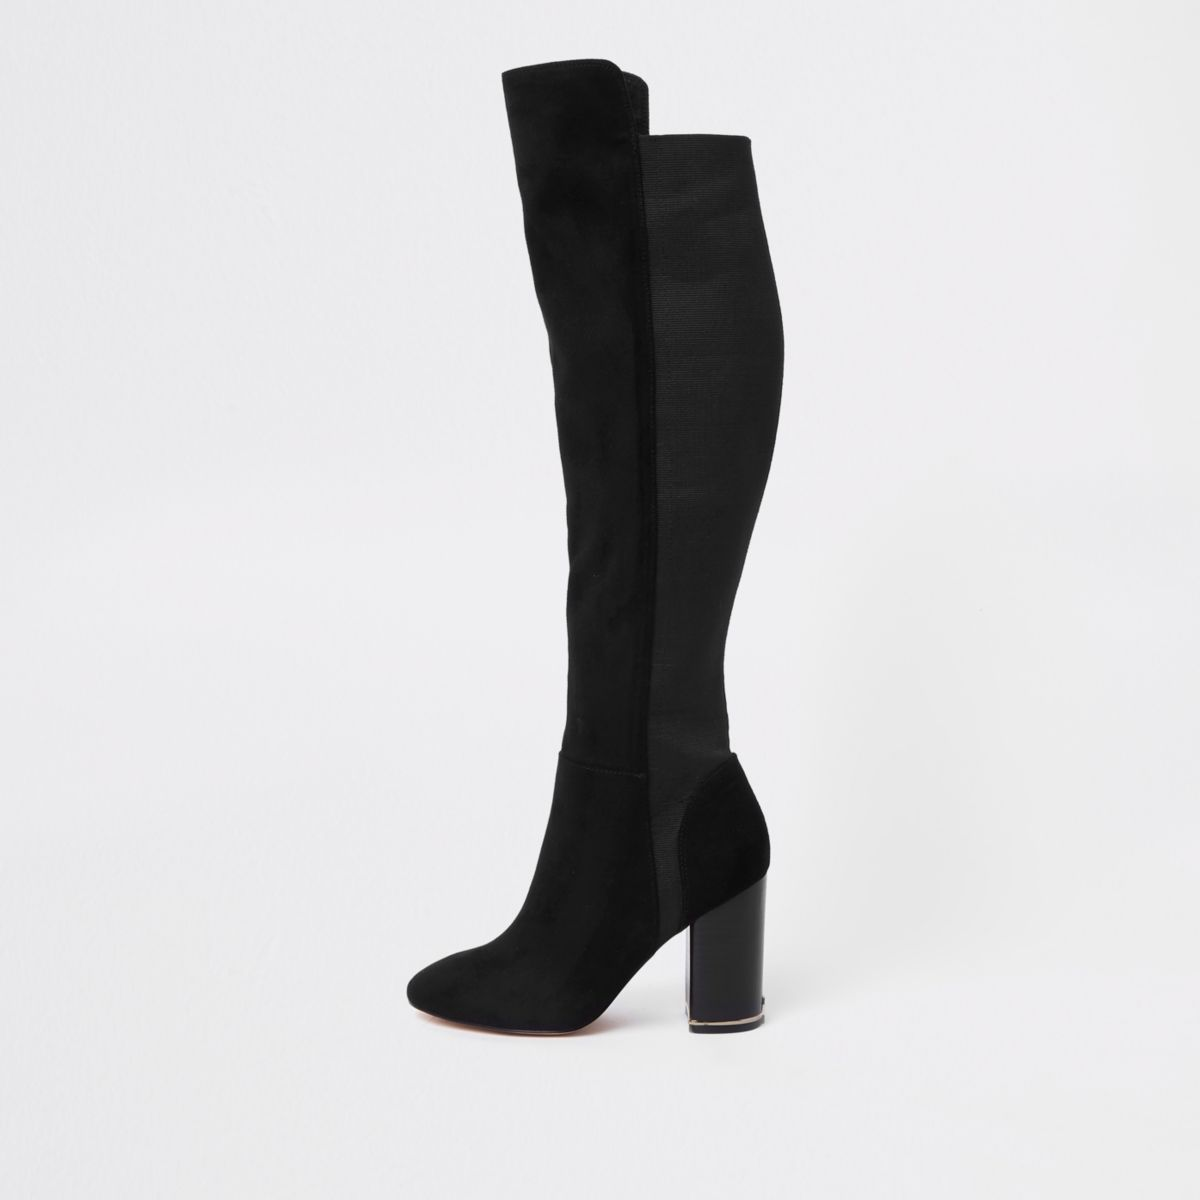 Wide fit knee high boots